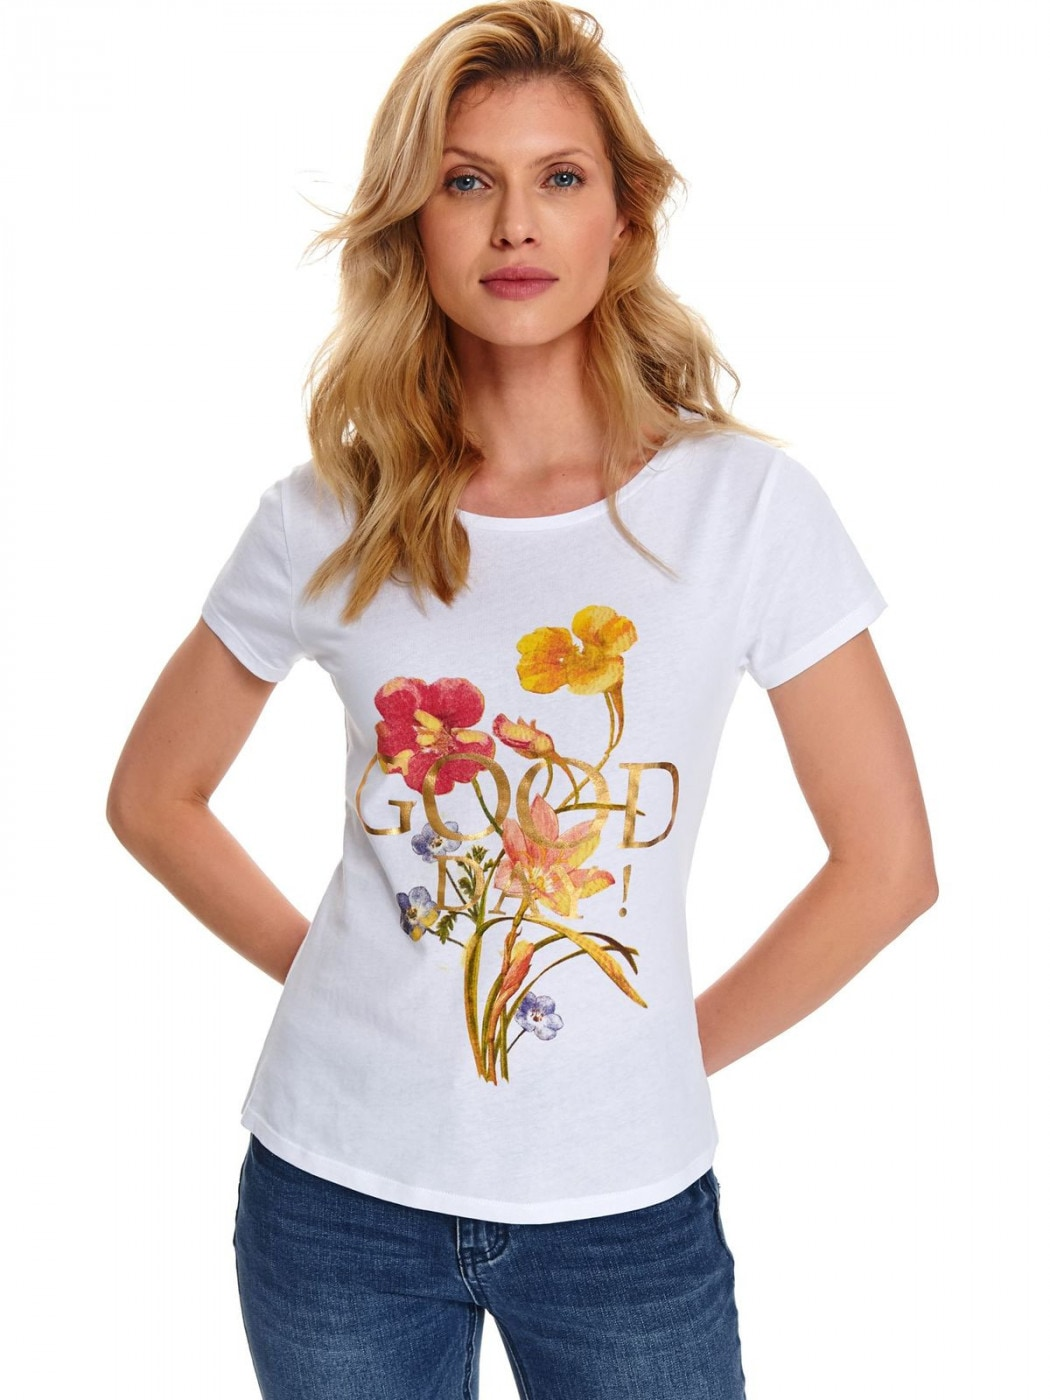 Women's T-shirt Top Secret Floral printed